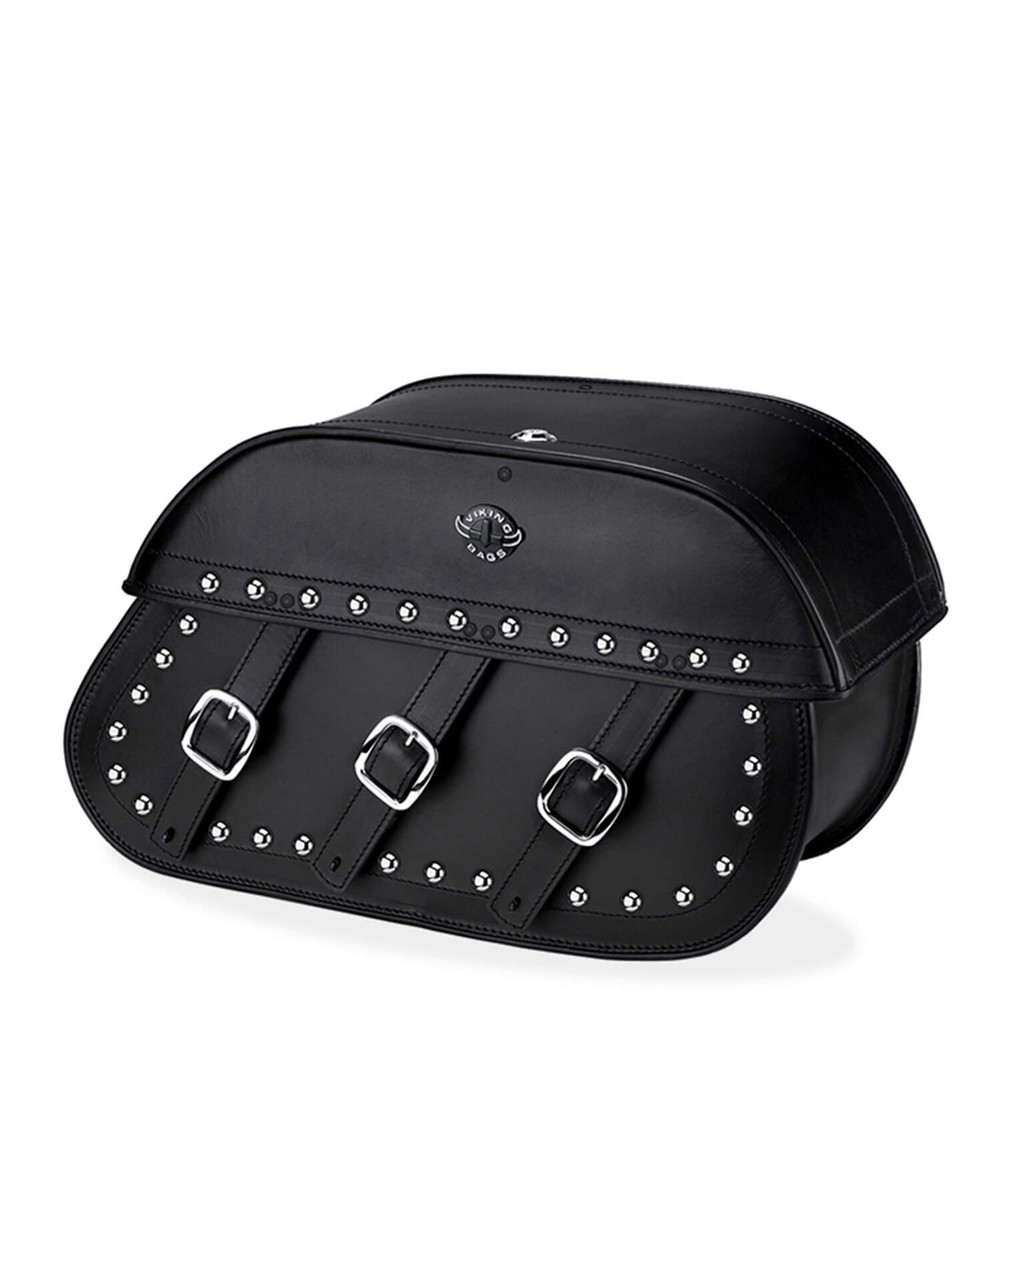 Victory Judge Trianon Studded Motorcycle Saddlebags Main Bag View